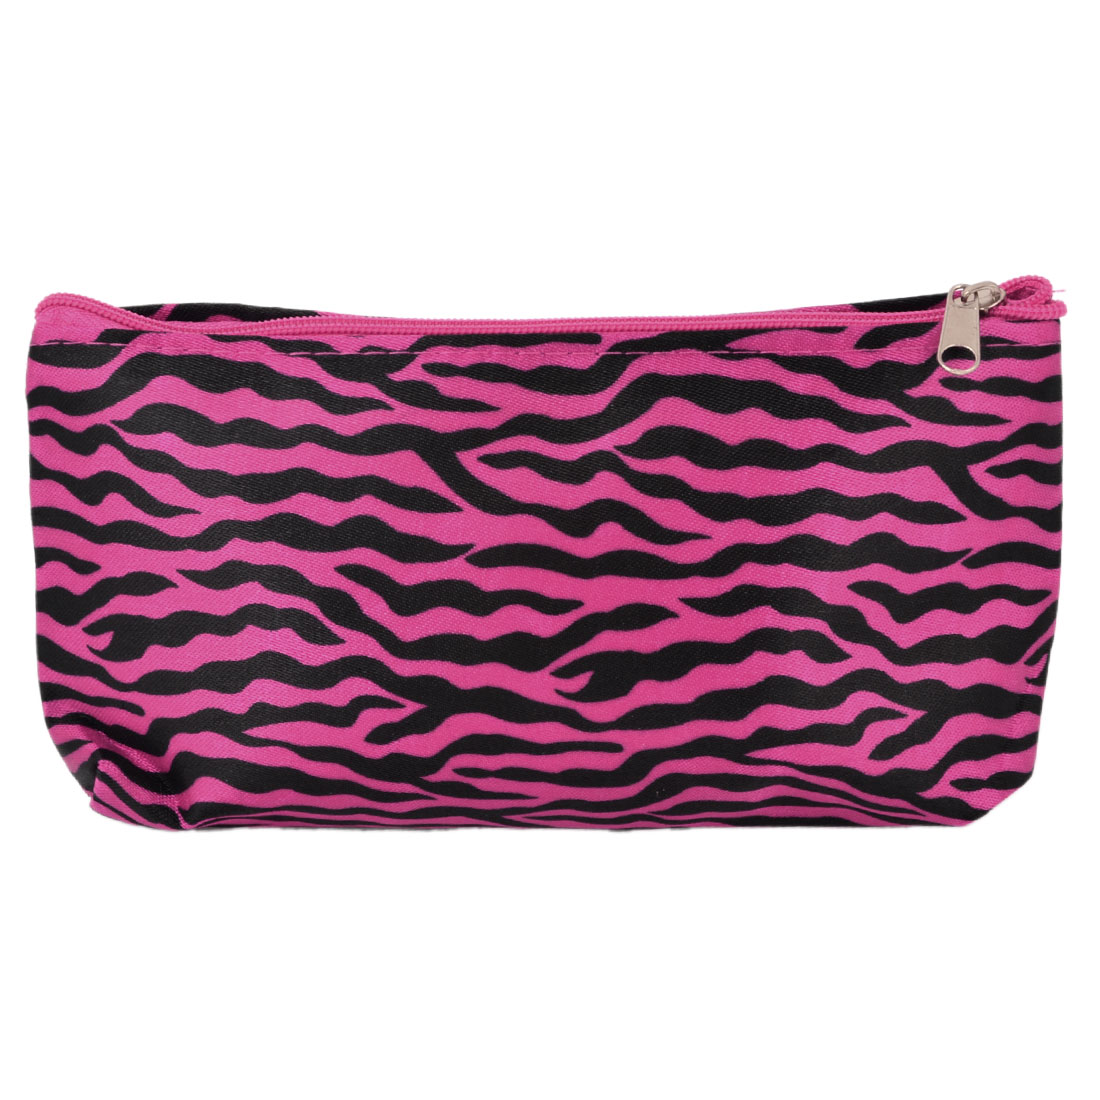 Lady Fuchsia Black Zebra Style Zip Up Cosmetic Holder Pouch Bag